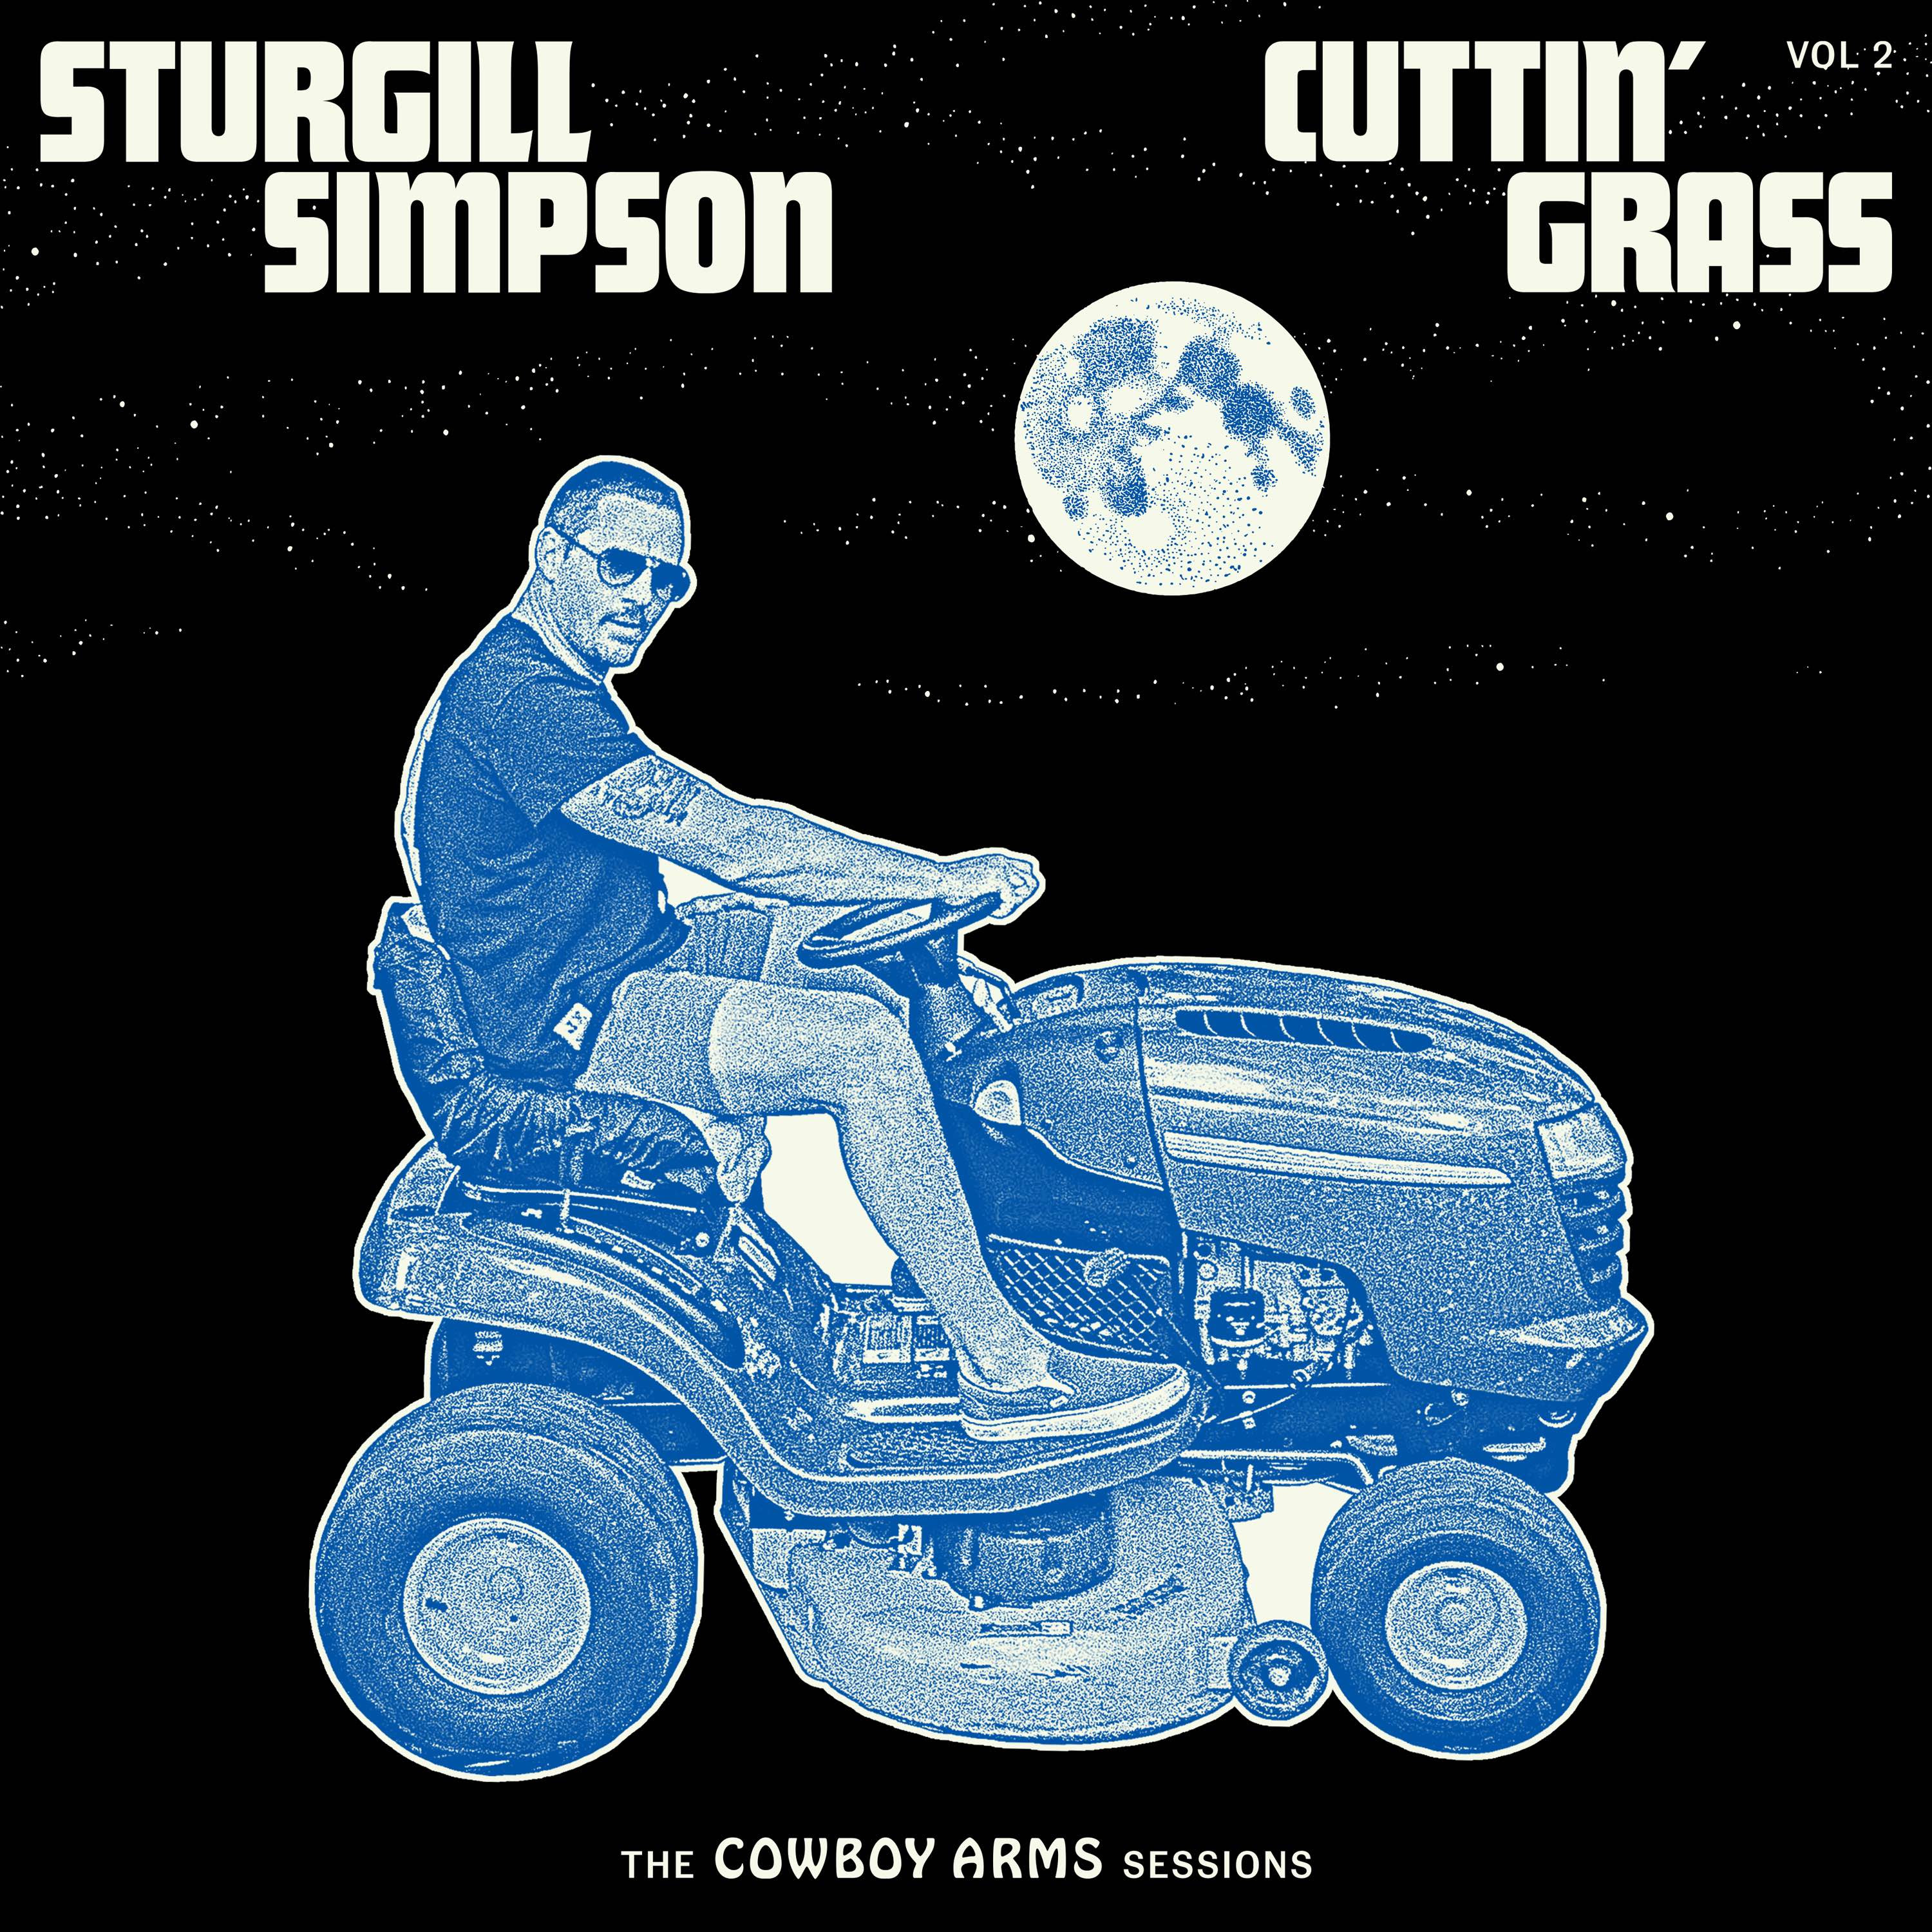 Sturgill Simpson Cuttin' Grass Vol 2 – The Cowboy Arms Sessions